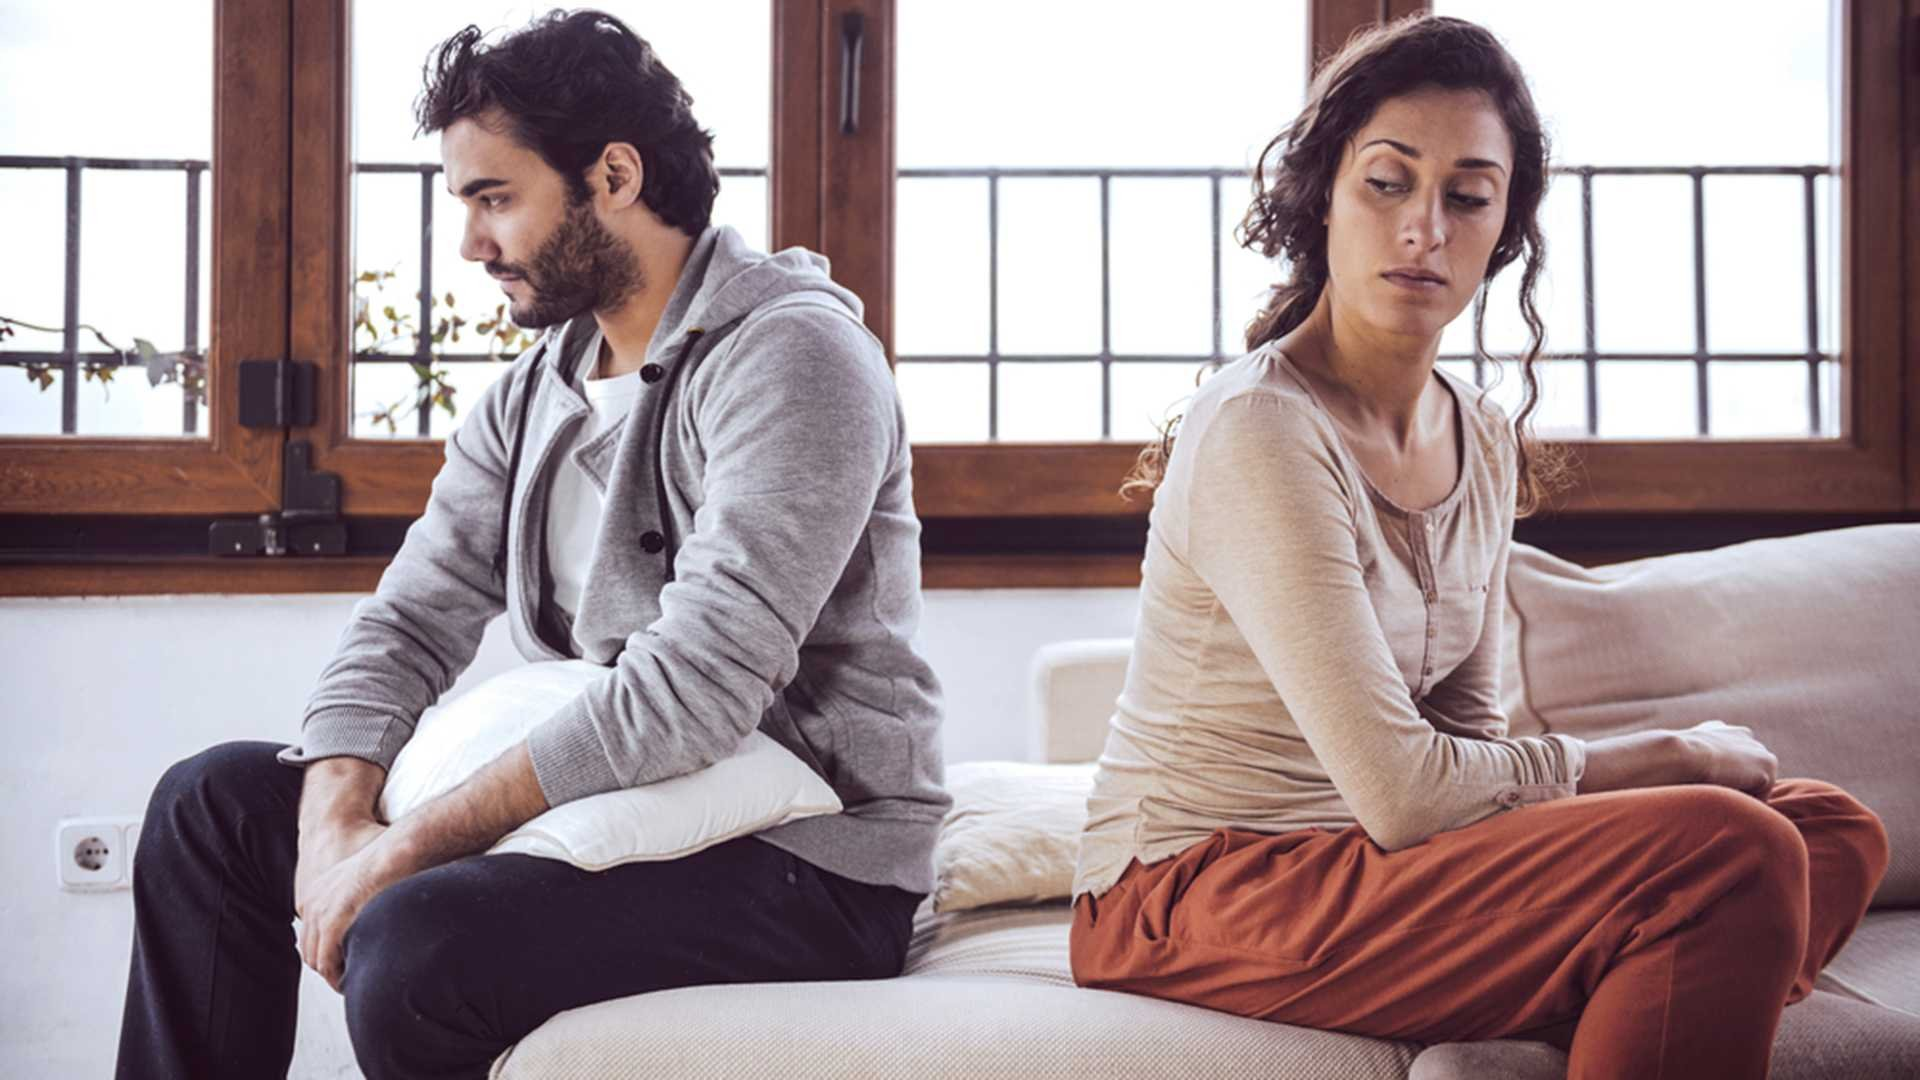 India Has The Lowest Divorce Rate In The World, Here's Why